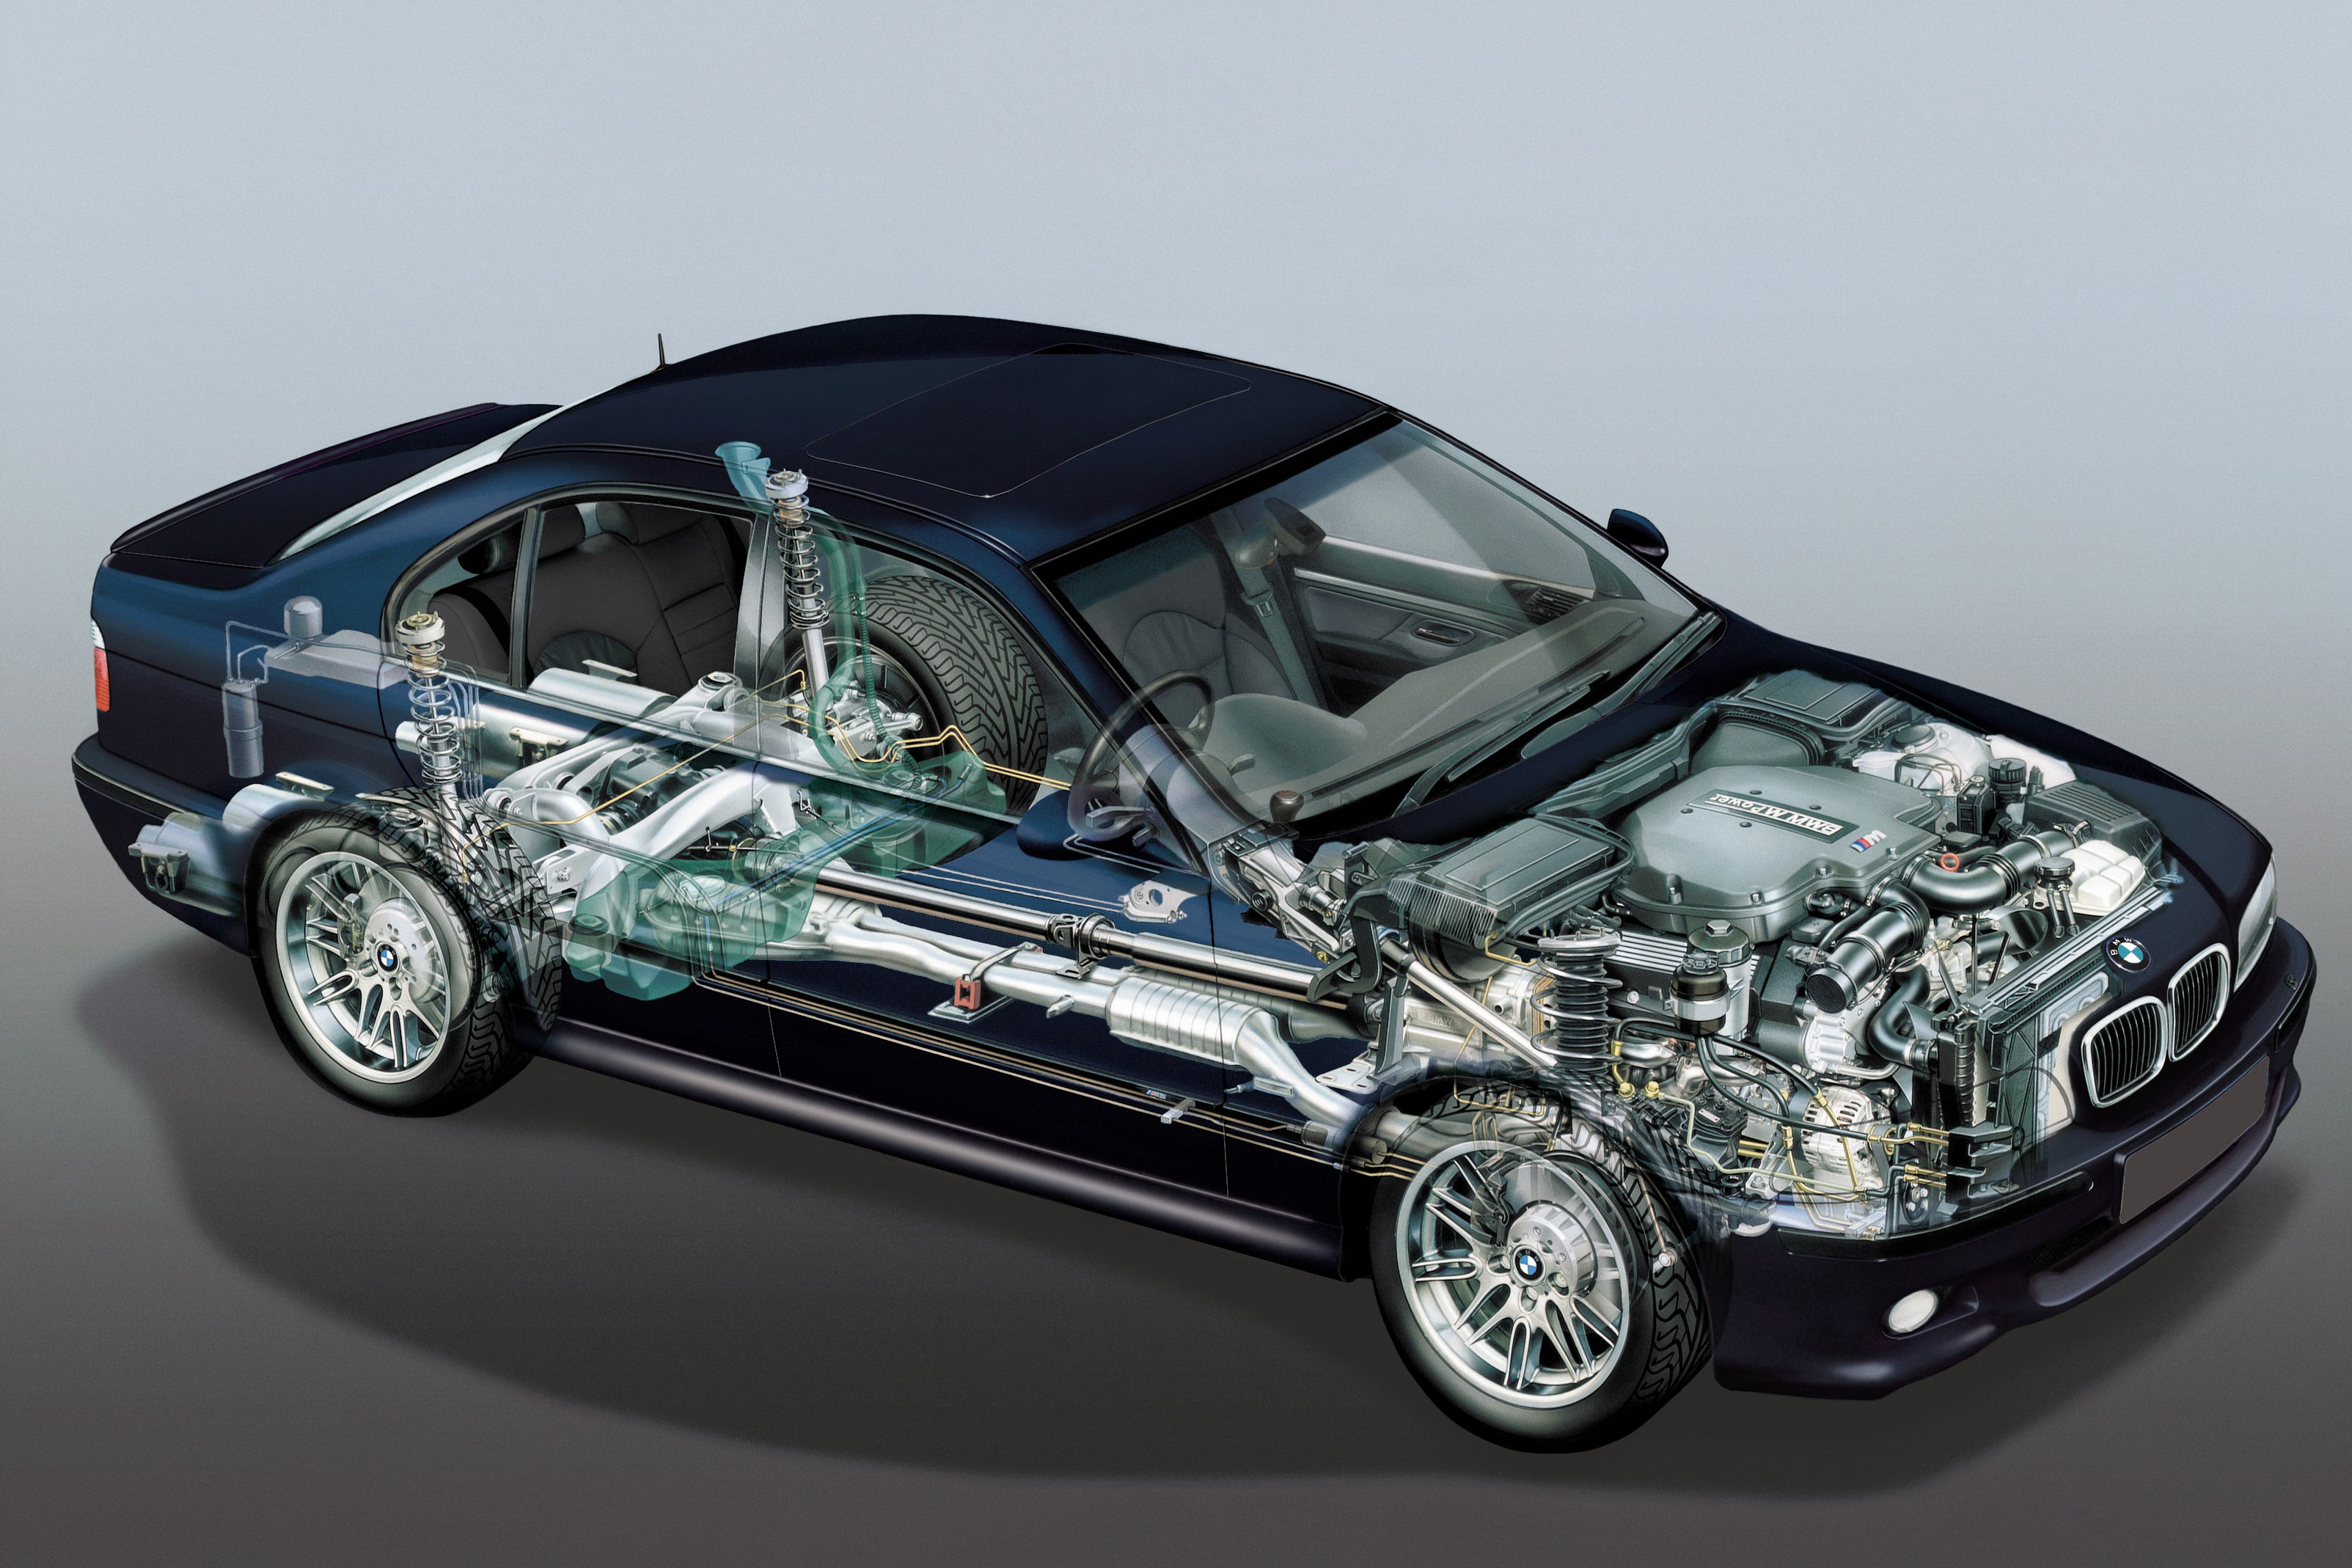 Best Car Wallpapers Ever Bmw Cutaway Illustrations Are Everything You Ever Wanted